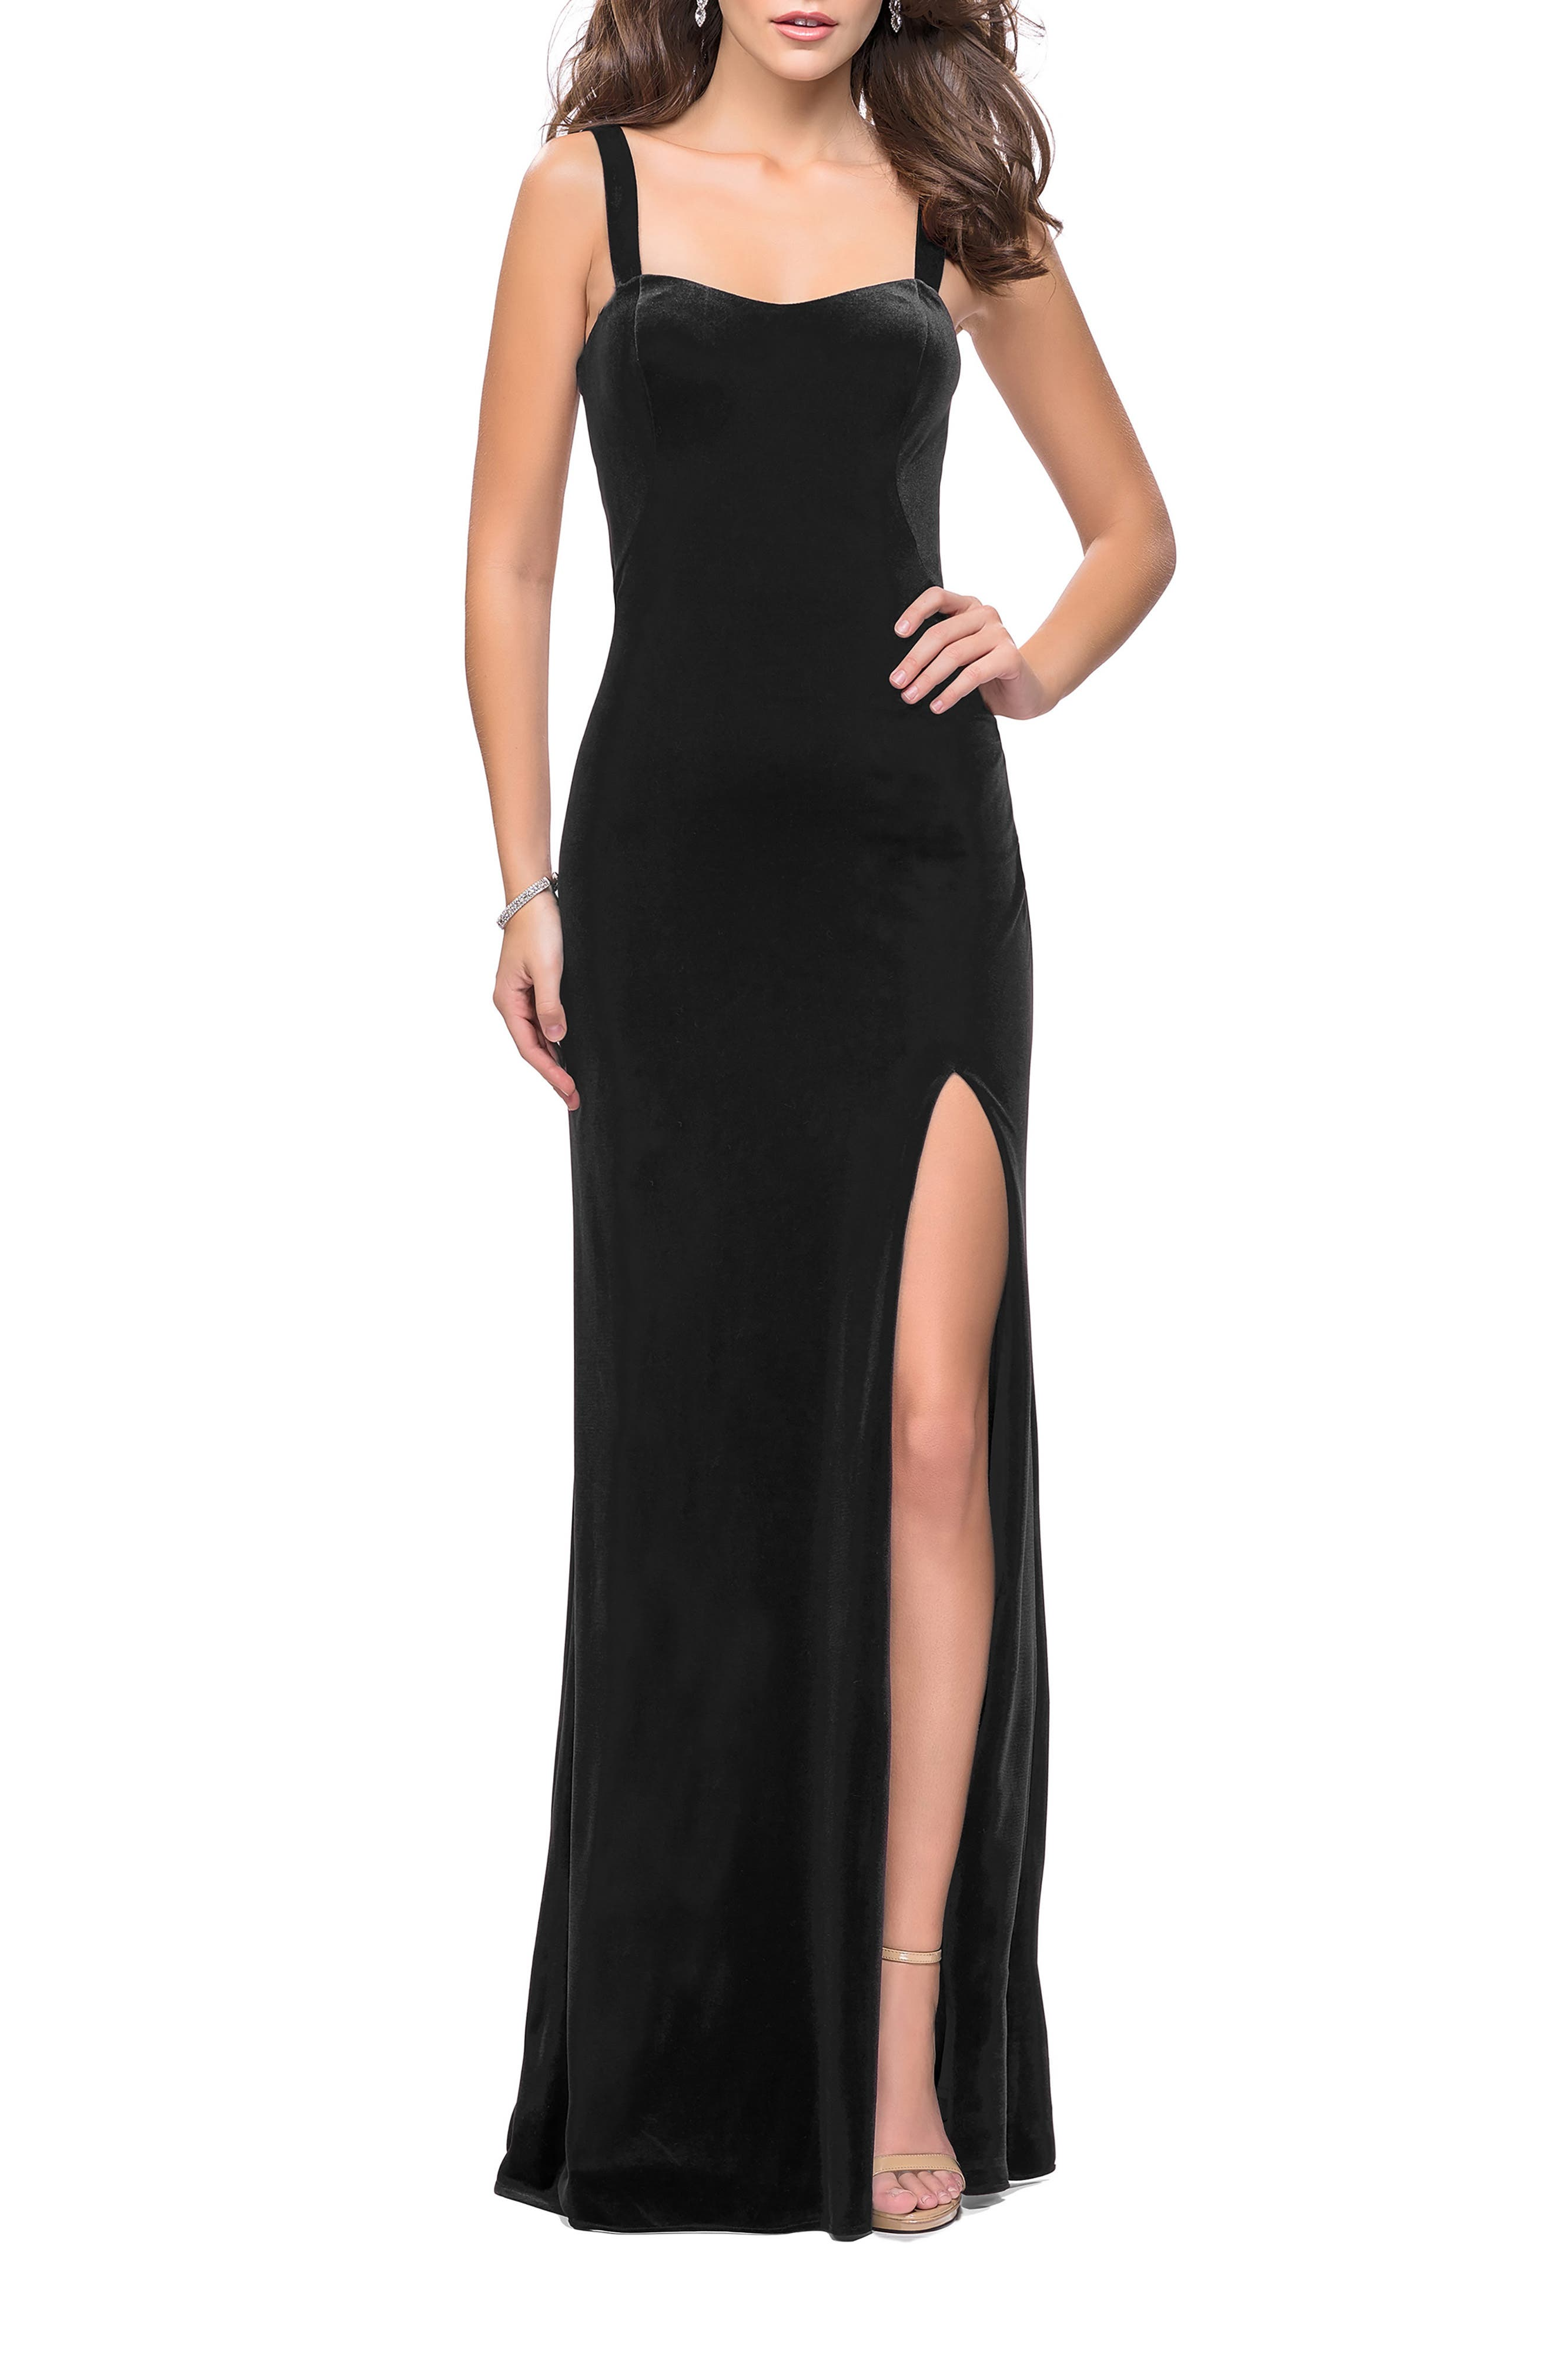 Turn heads from all directions in this regal column dress designed with a deep side slit and a dramatic, strappy back with horizontal pleats at the hips. Style Name: La Femme Velvet Column Gown. Style Number: 6170016. Available in stores.